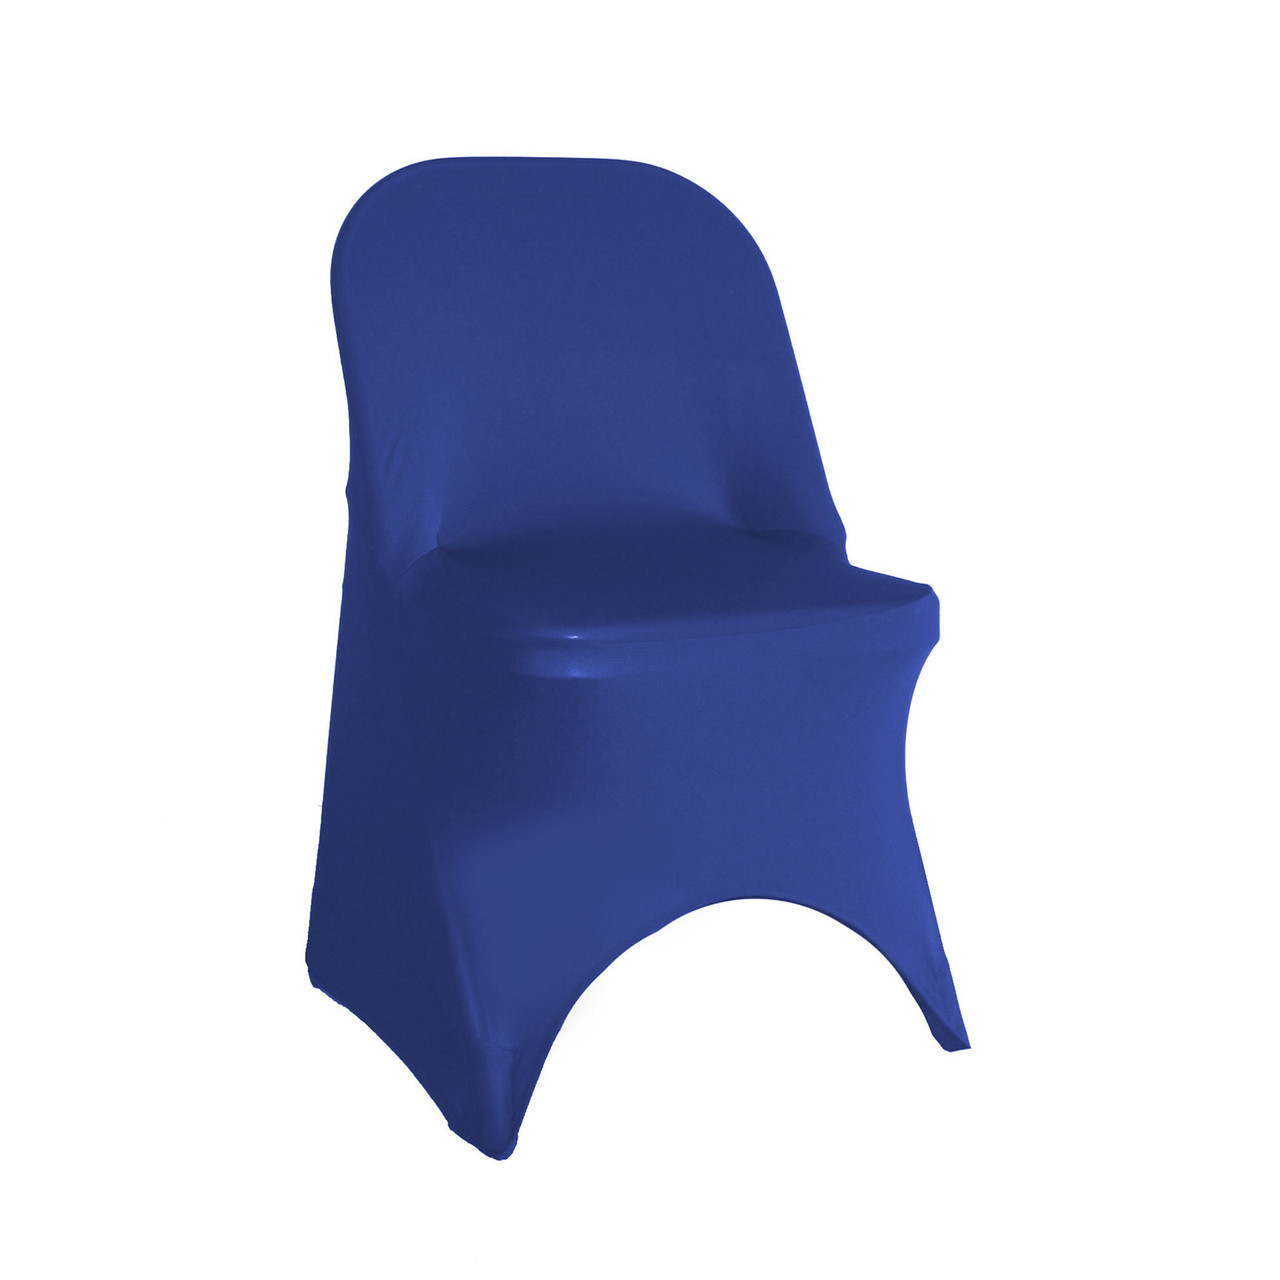 Astounding Stretch Spandex Folding Chair Cover Royal Blue Caraccident5 Cool Chair Designs And Ideas Caraccident5Info